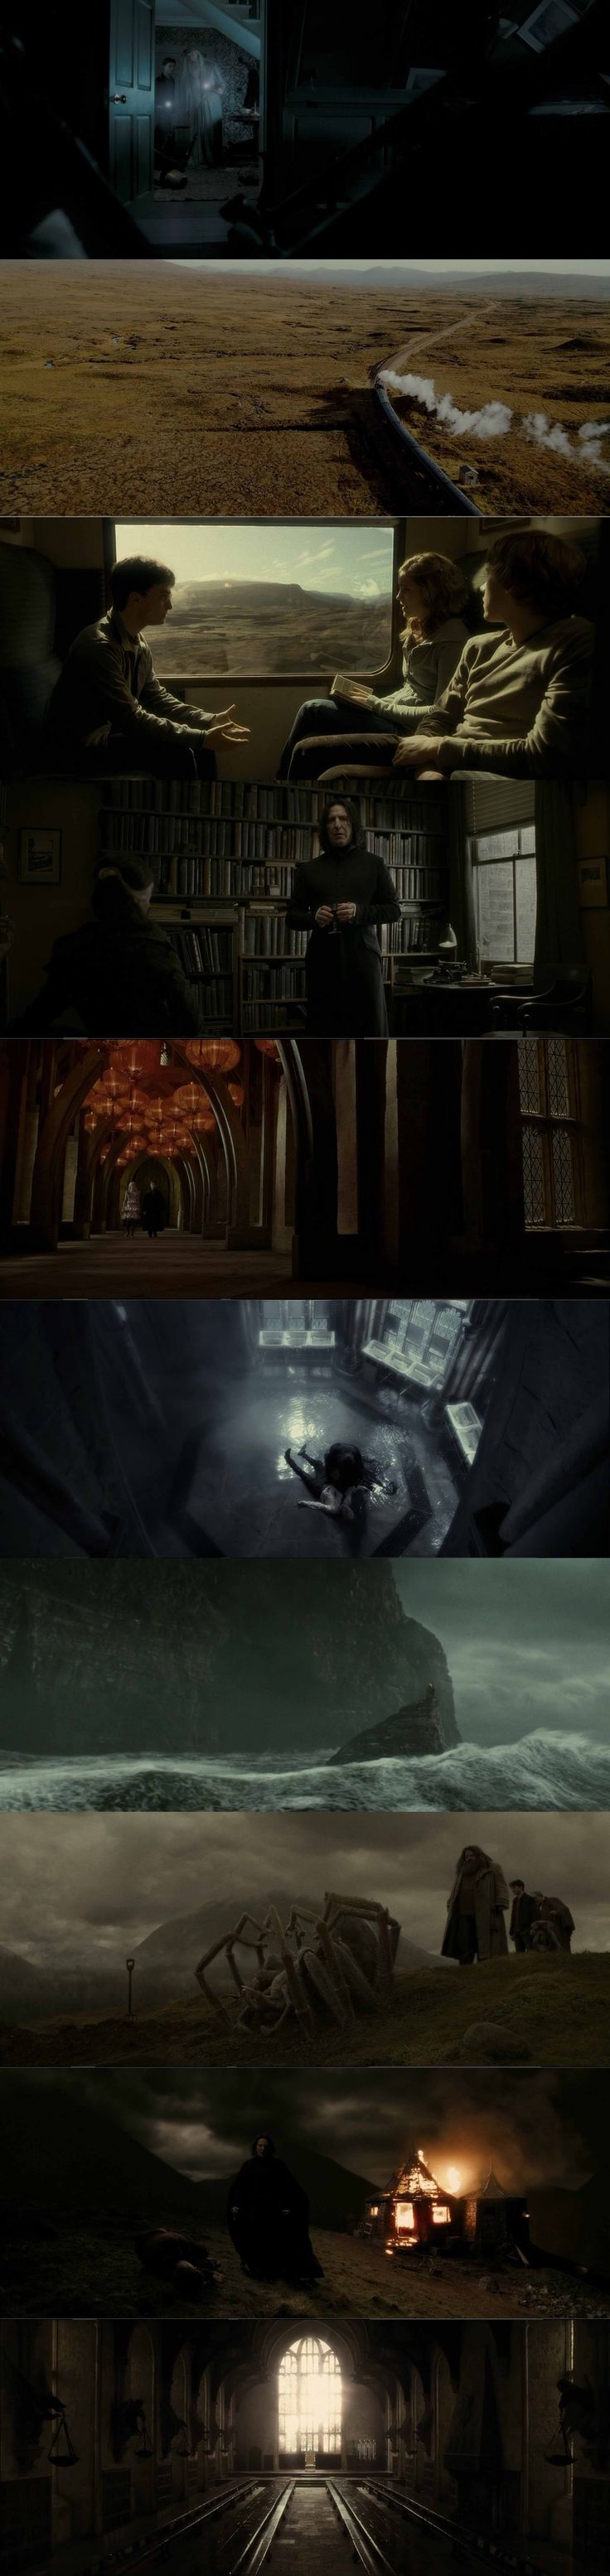 Harry Potter is a very mysterious film with the help from the cinematography. The shots i personally like is where the protagonists are on the train while in the centre of the shot you can see the empty background of fields within the same shot which could suggest that there is no escape.